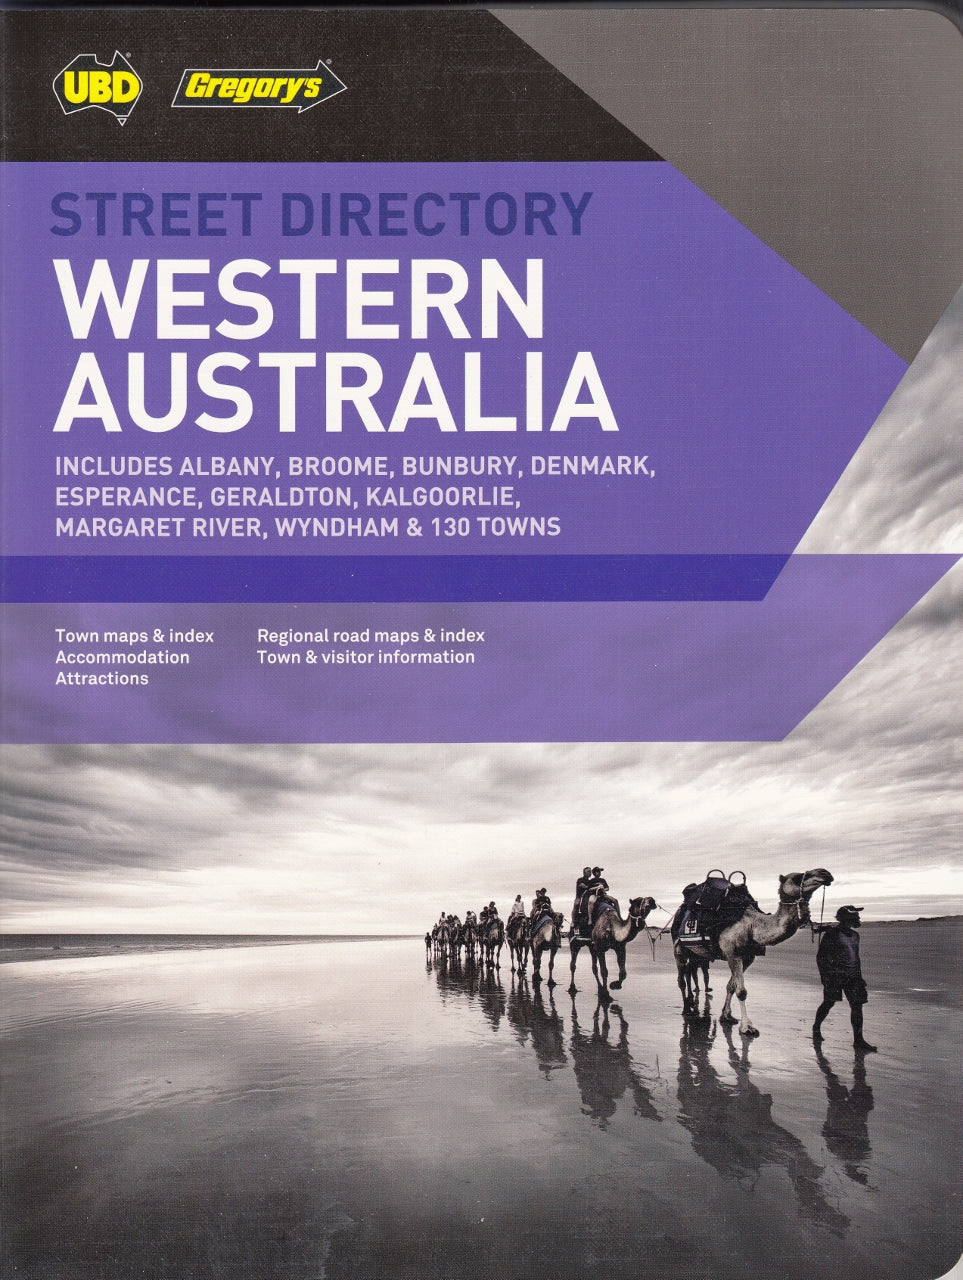 Map Of Western Australia With Cities.Western Australia Street Directory Ubd